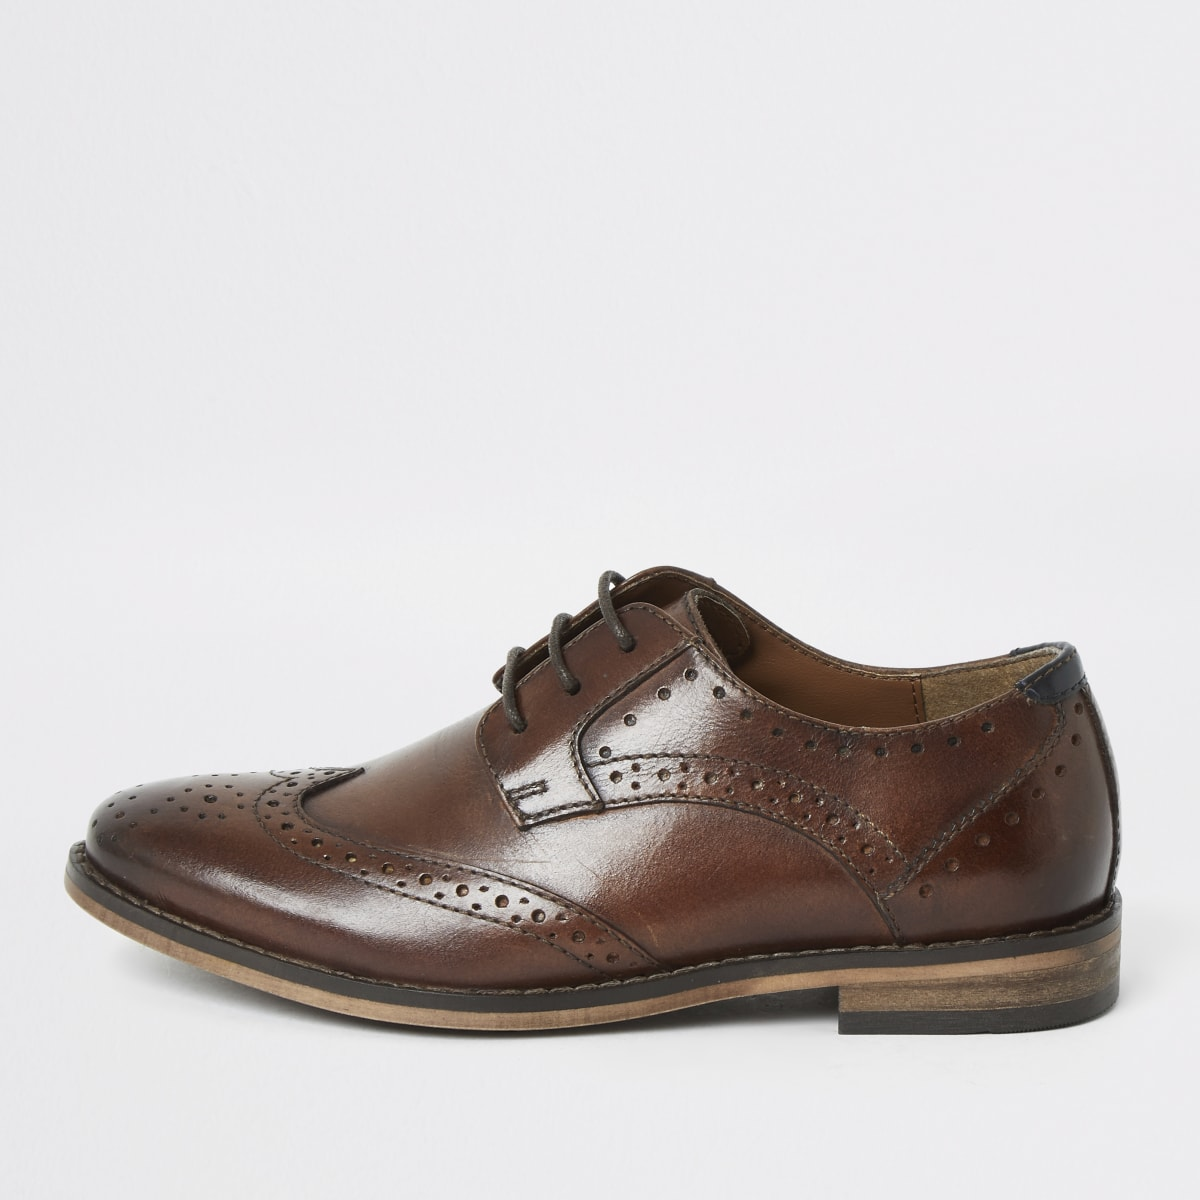 Boys brown lace-up leather brogues